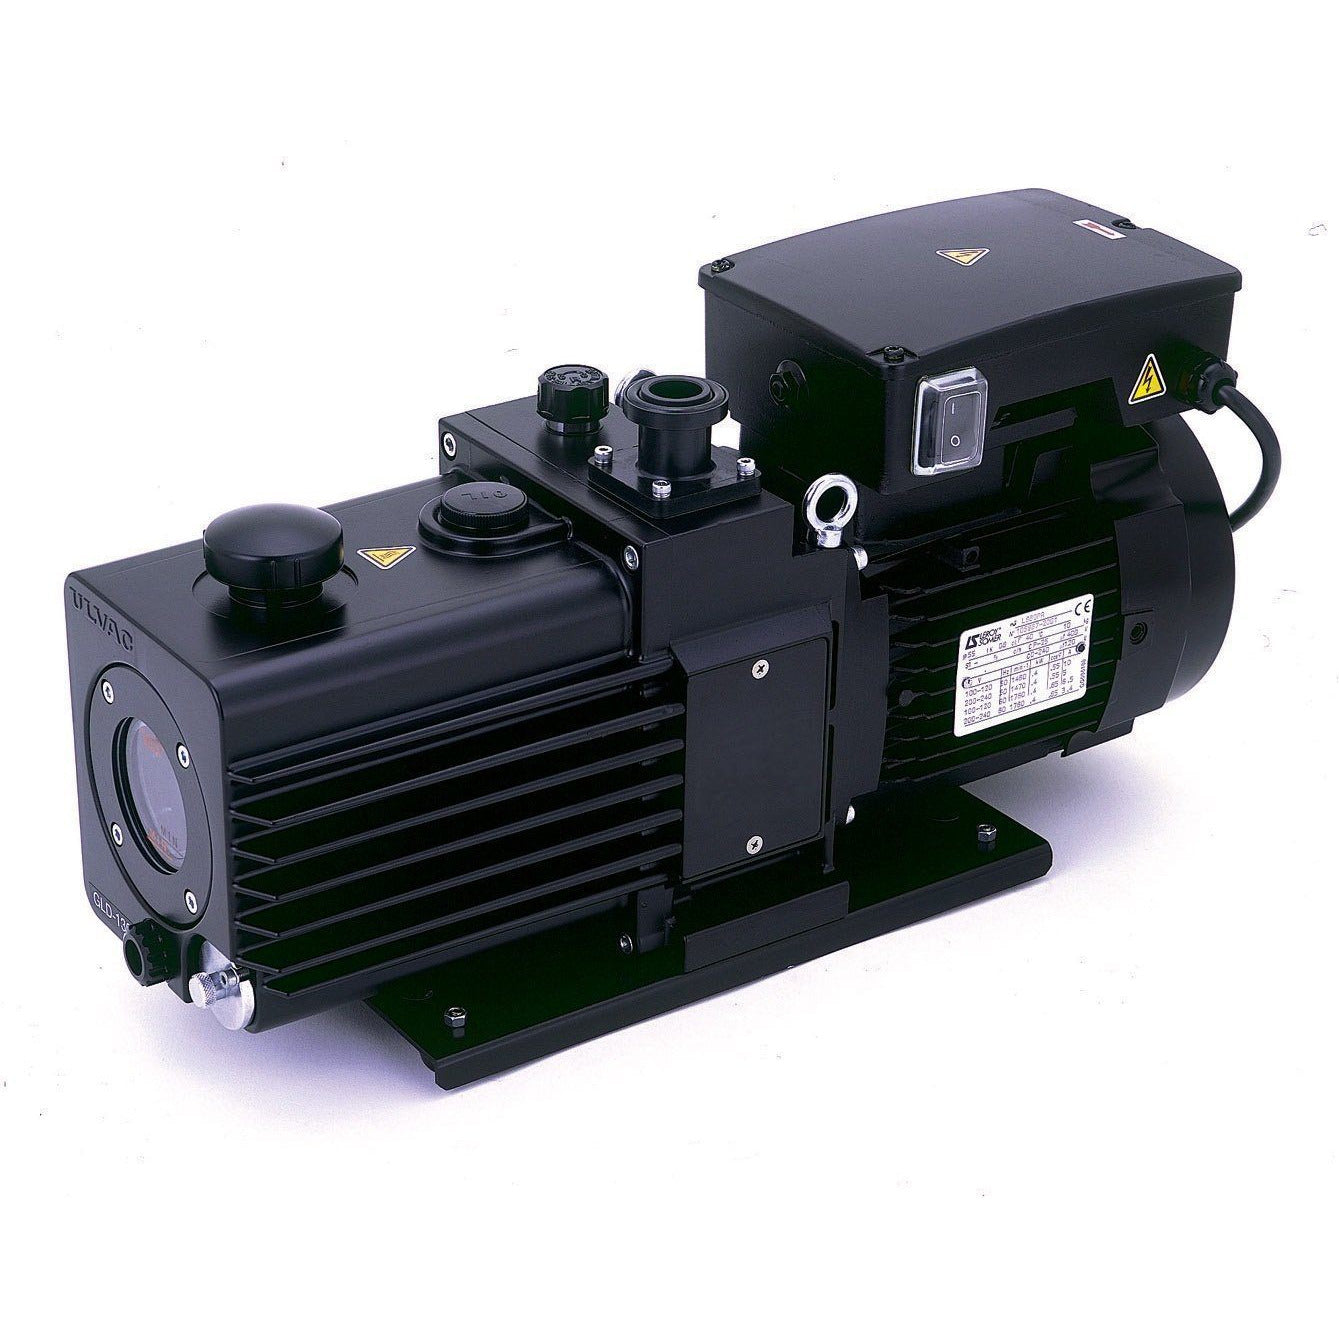 ULVAC GLD-137CC Direct Drive Oil-Sealed Rotary Vacuum Pump New Products ULVAC